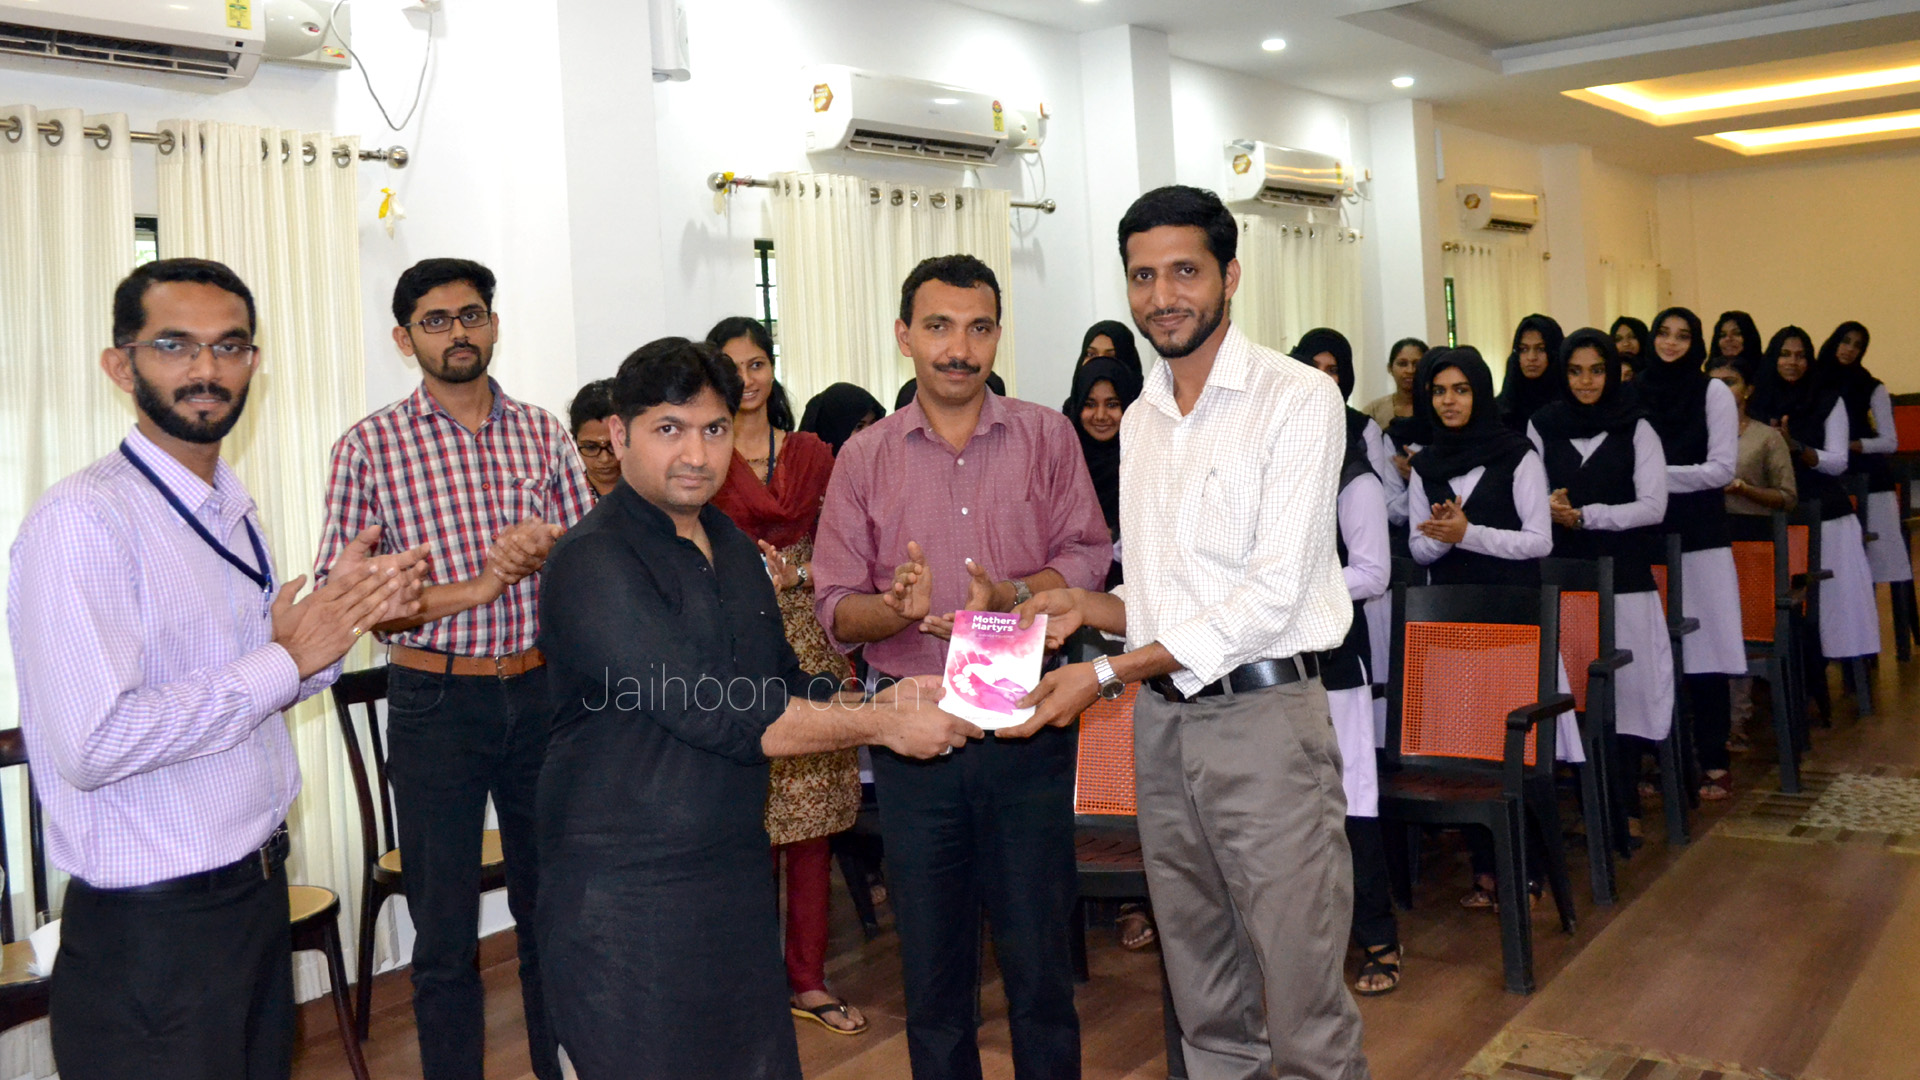 Presenting Mothers & Martyr's book to Ideal College, Kadakassery - Kerala. (Oct 2017)